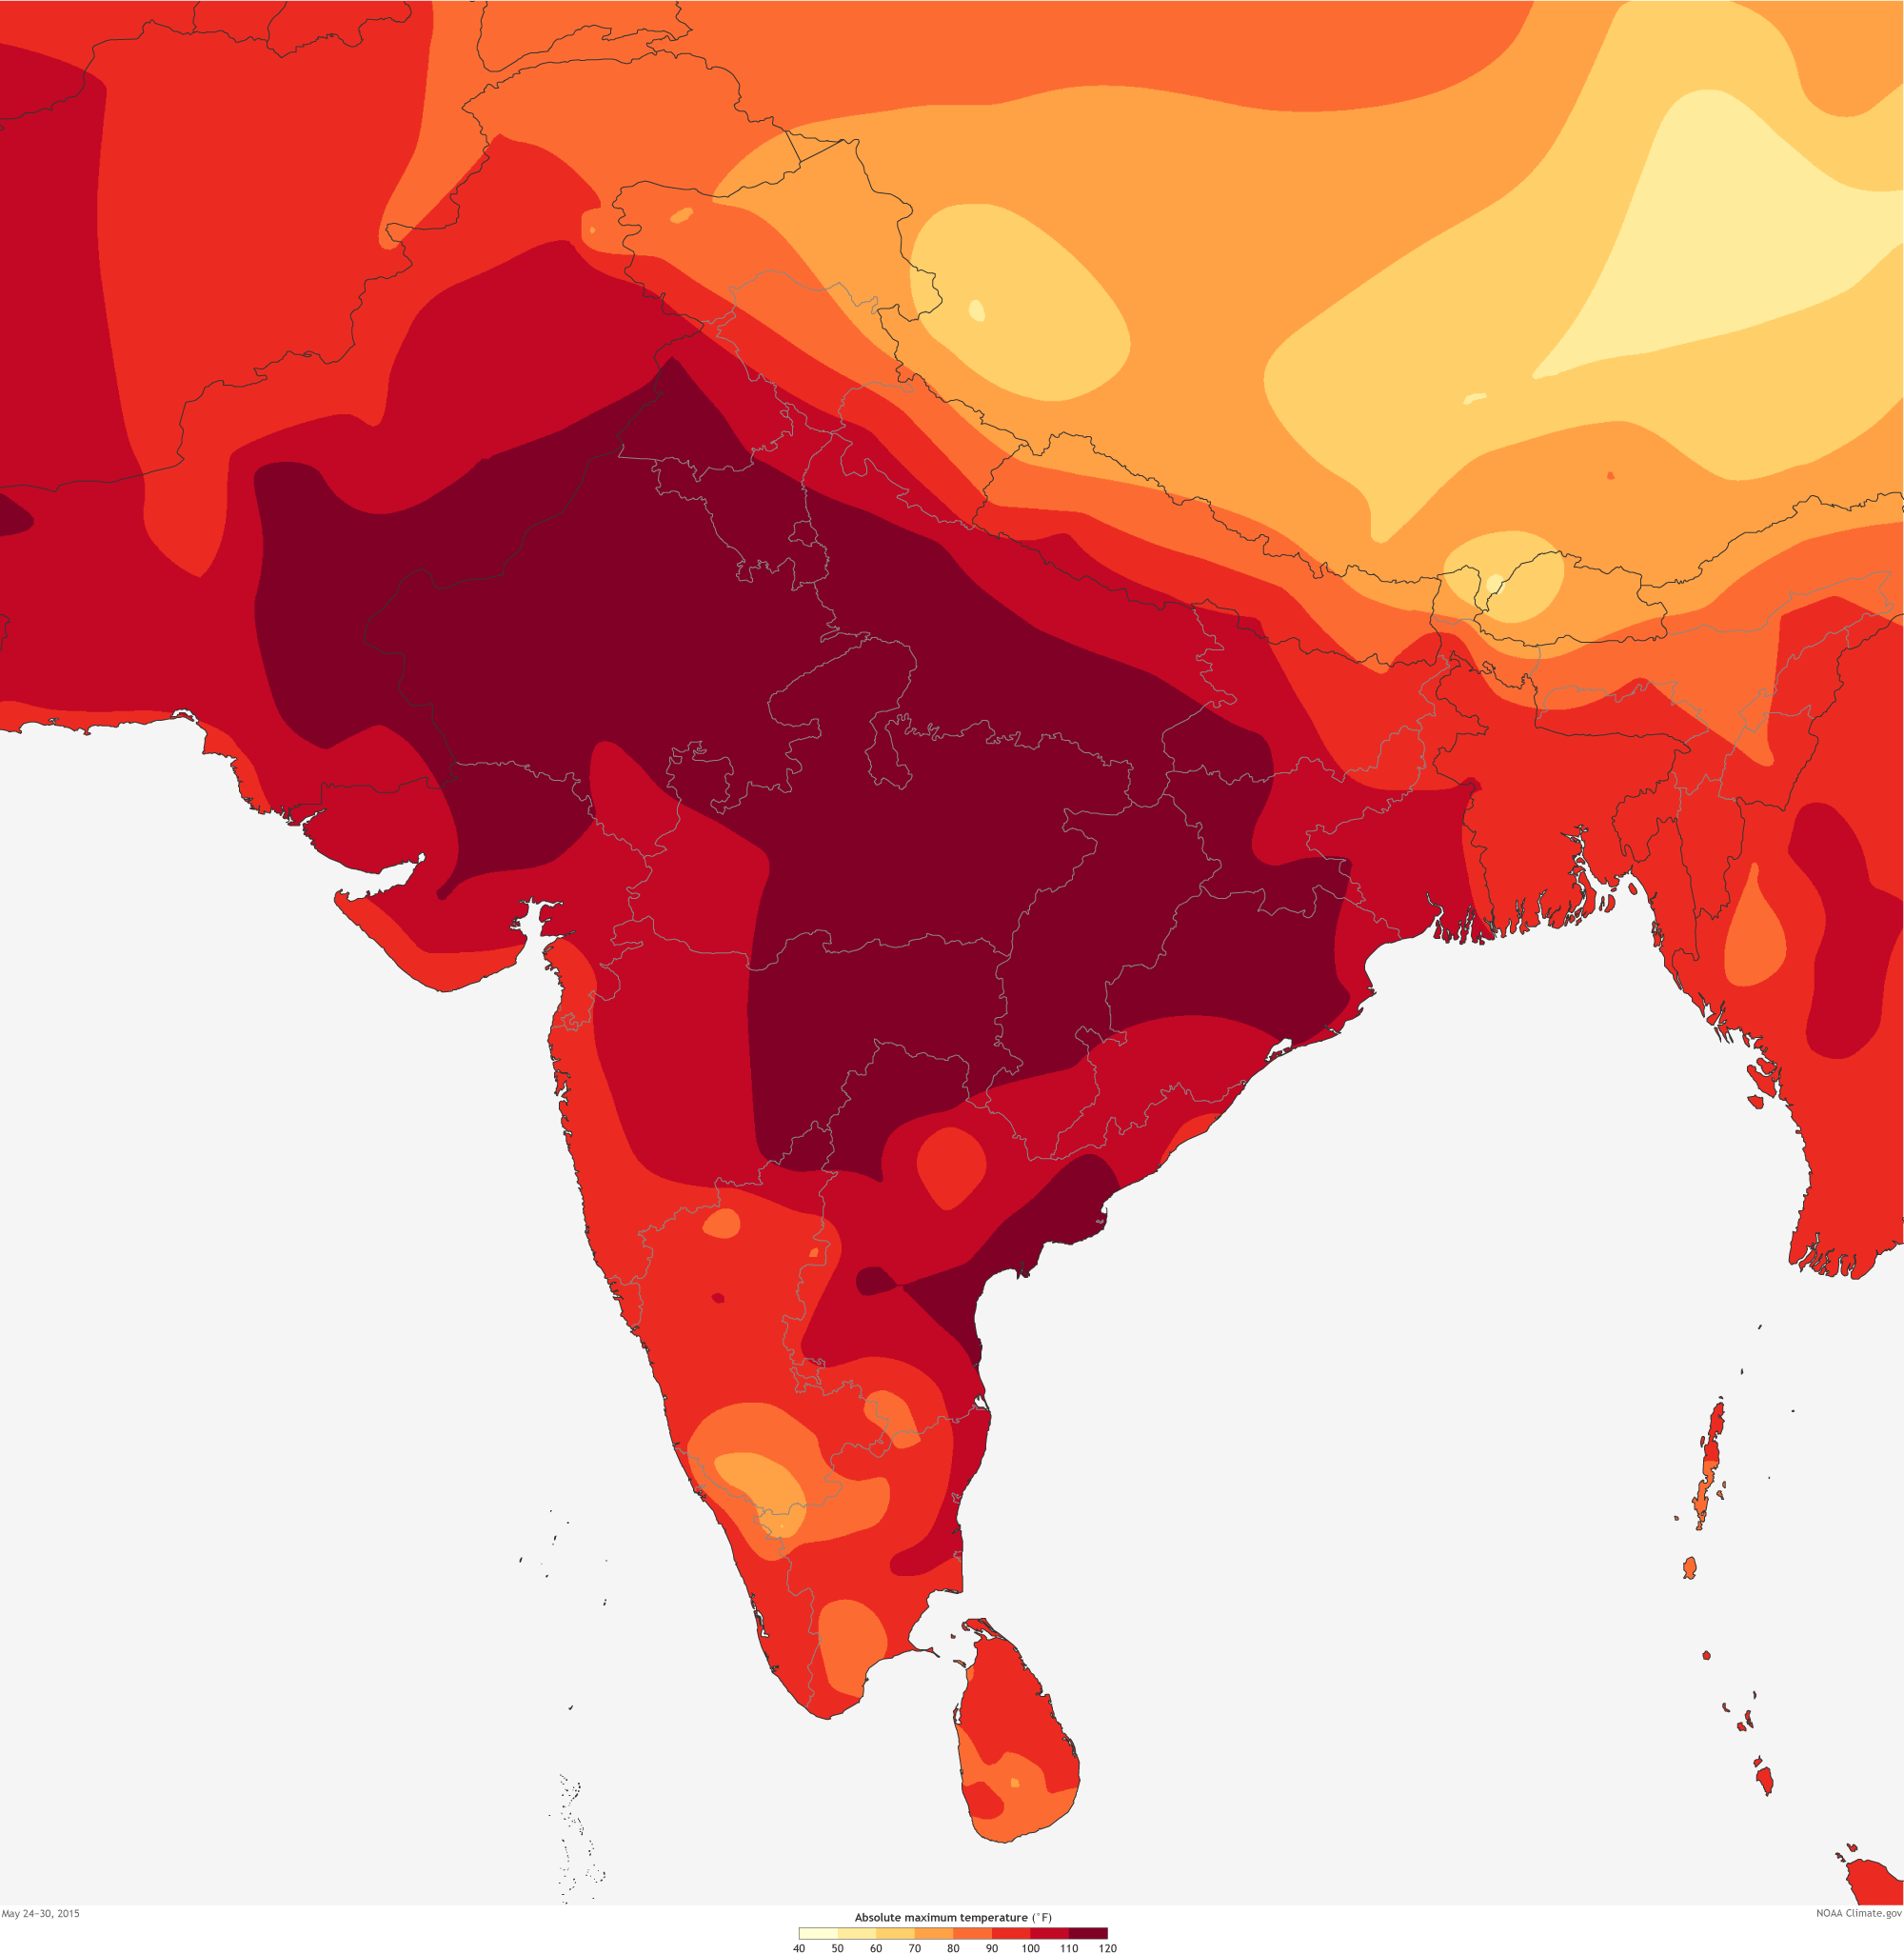 India Heat Wave Kills Thousands NOAA Climategov - Us weather map high temperatures